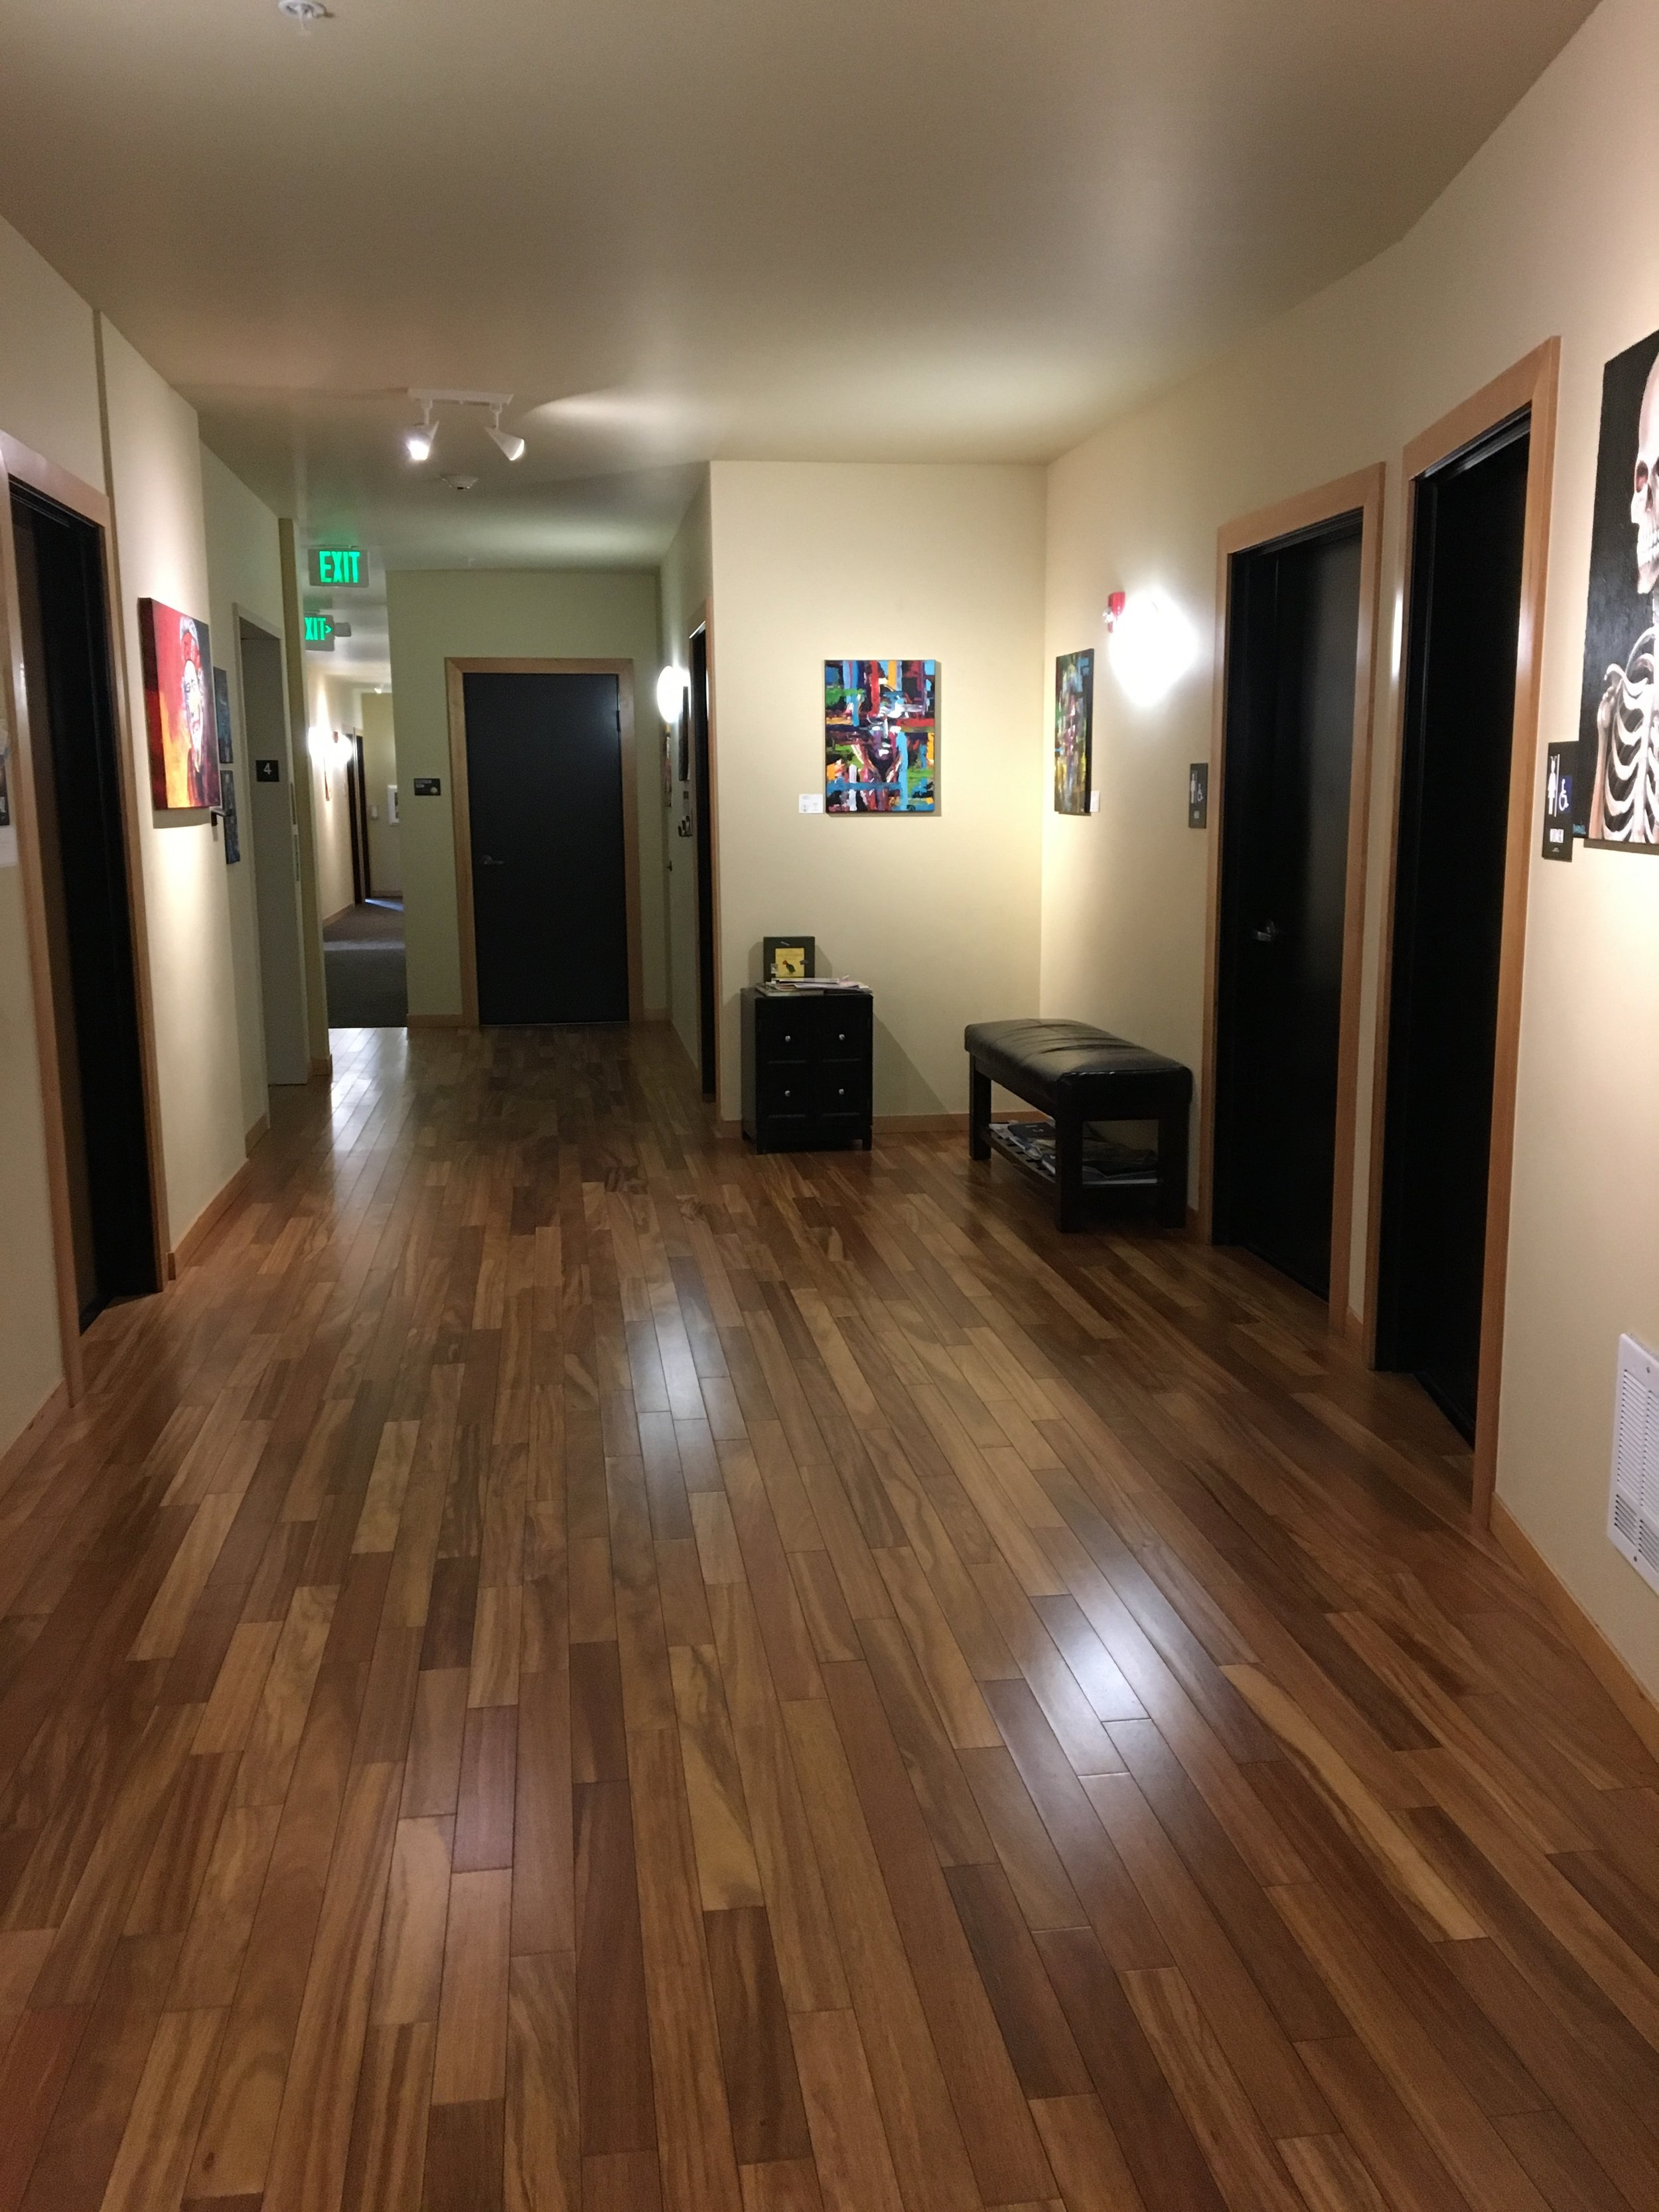 Seattle therapy office waiting space for kids and adults